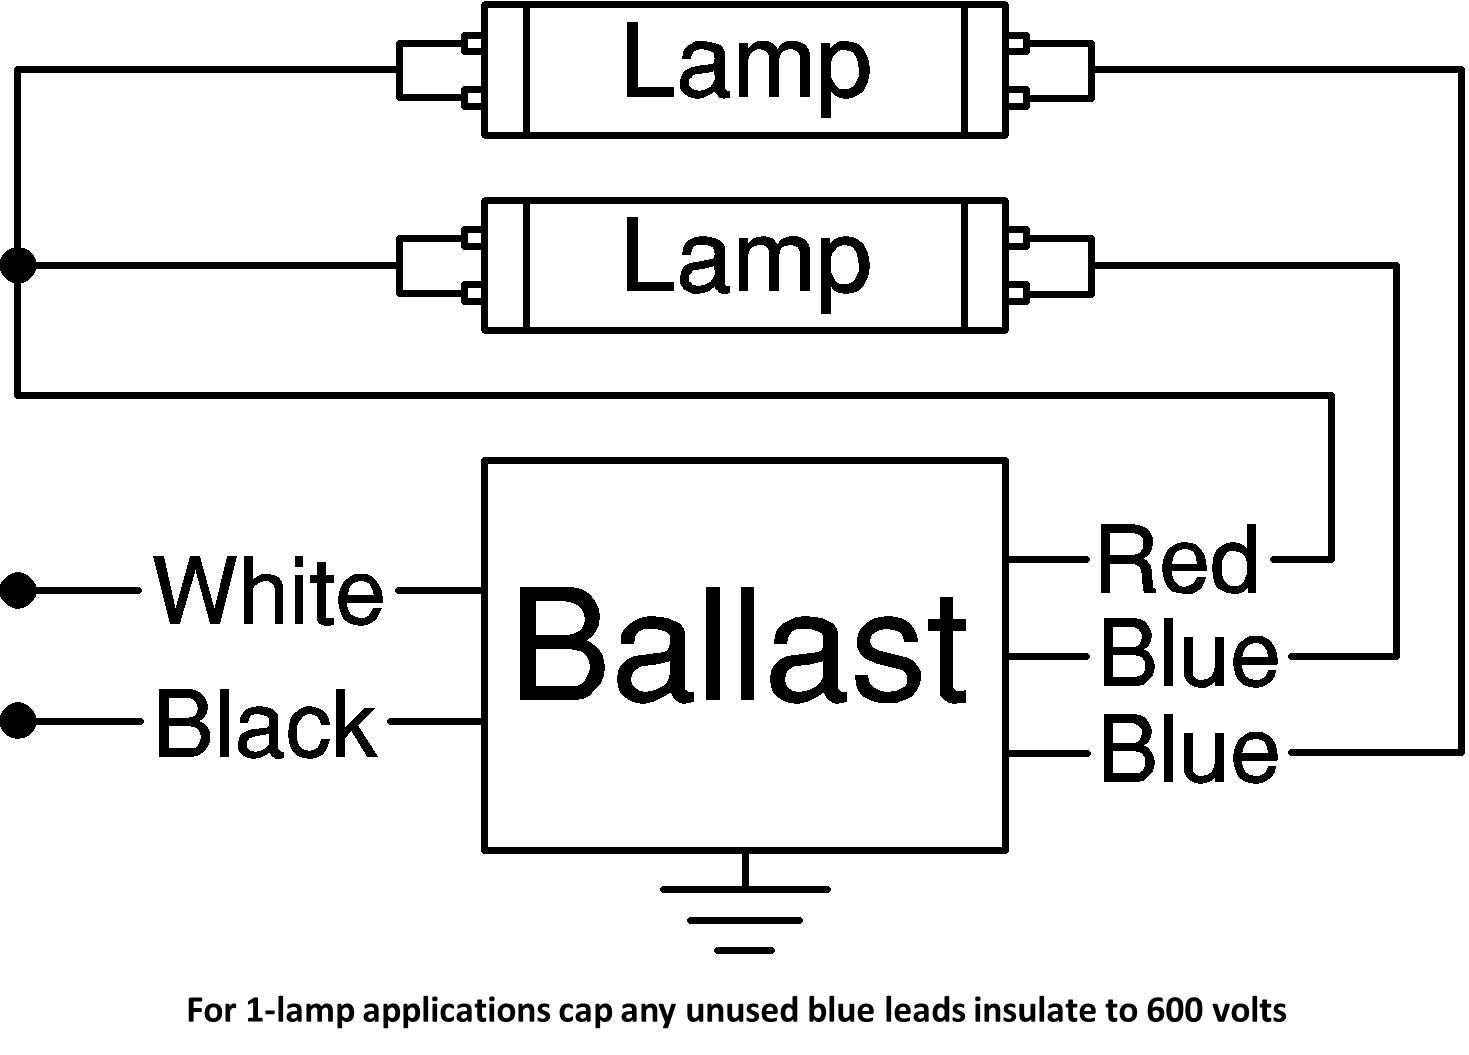 wiring diagrams for 4 lamp t5ho ballast best part of wiring diagramhome · wiring diagrams for 4 lamp t5ho ballast · hps ballast wiring wz schwabenschamanen de \\u2022